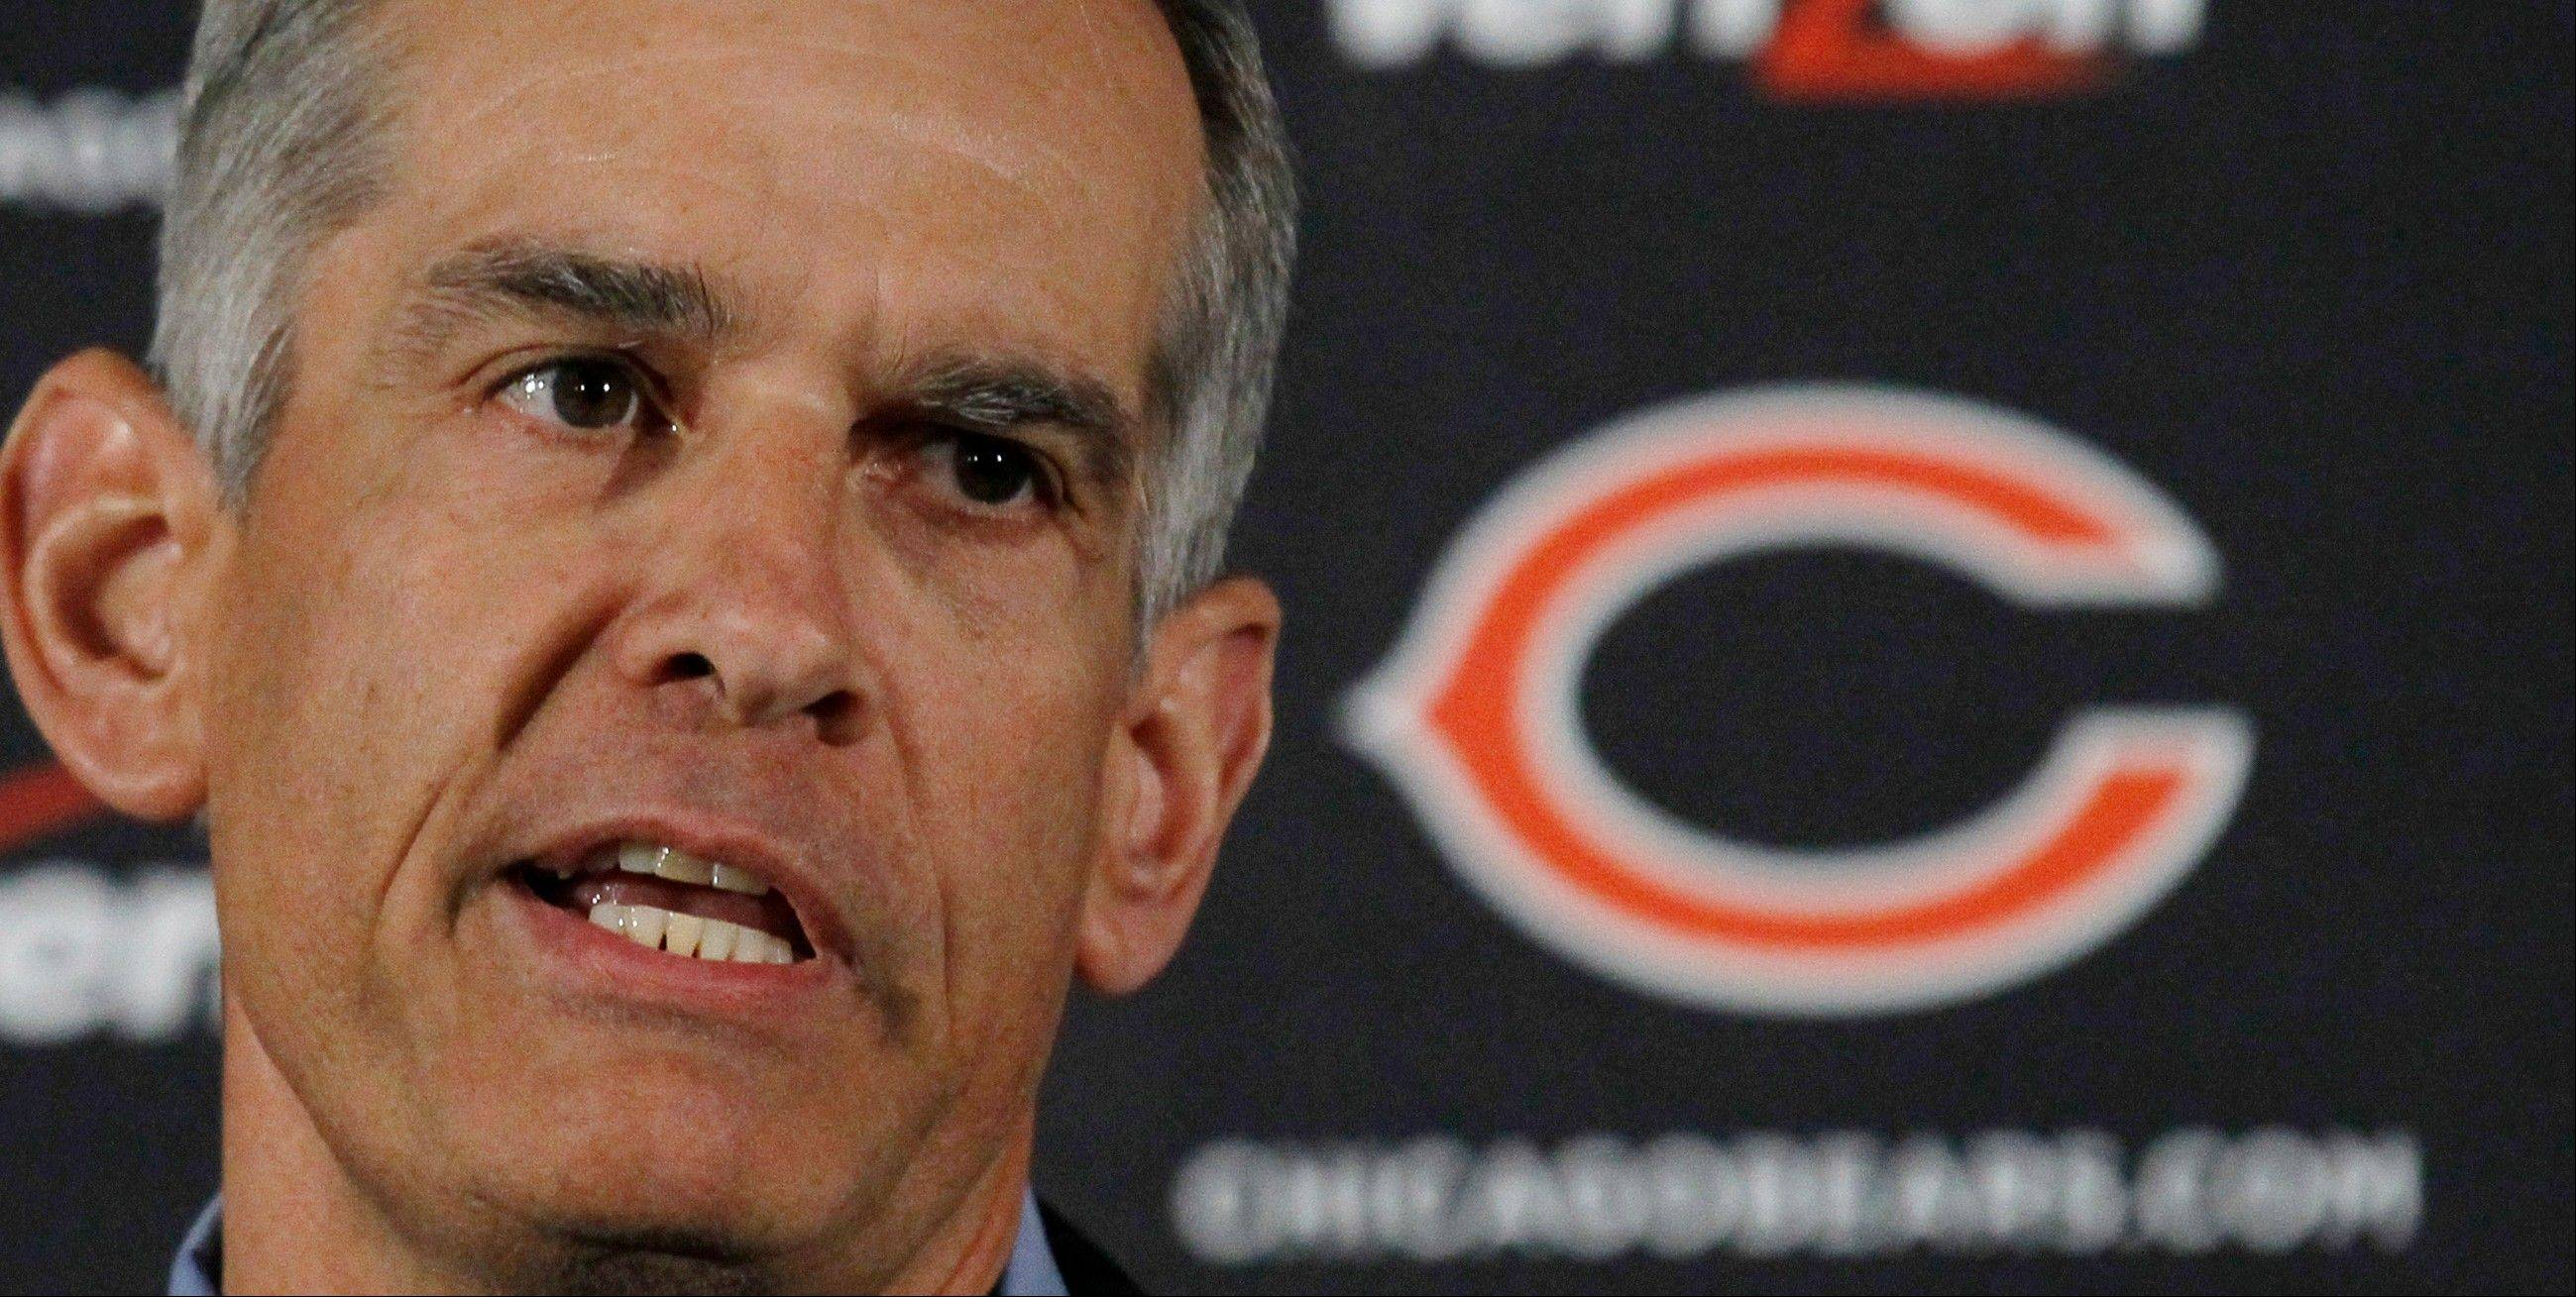 Phil Emery, the Chicago Bears general manager, says the Bears have some things to prove before they can be considered a Super Bowl contender. That label, he said, has to be earned on the field.